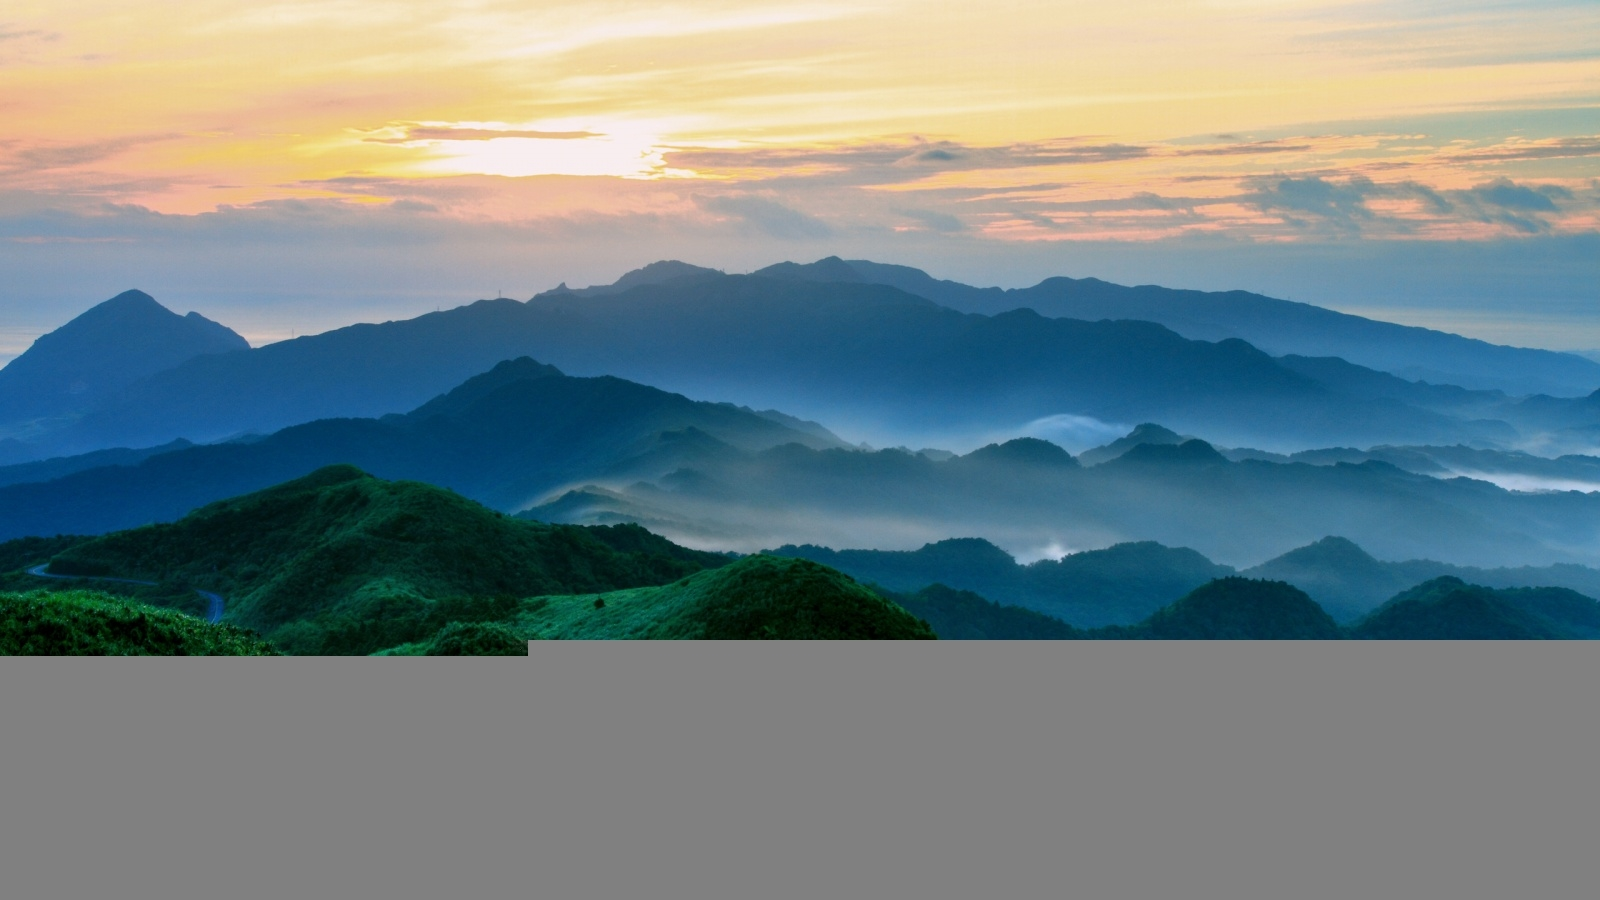 Widescreen Wallpapers High Resolution: Mountains HD Widescreen High Res Backgrounds Images For